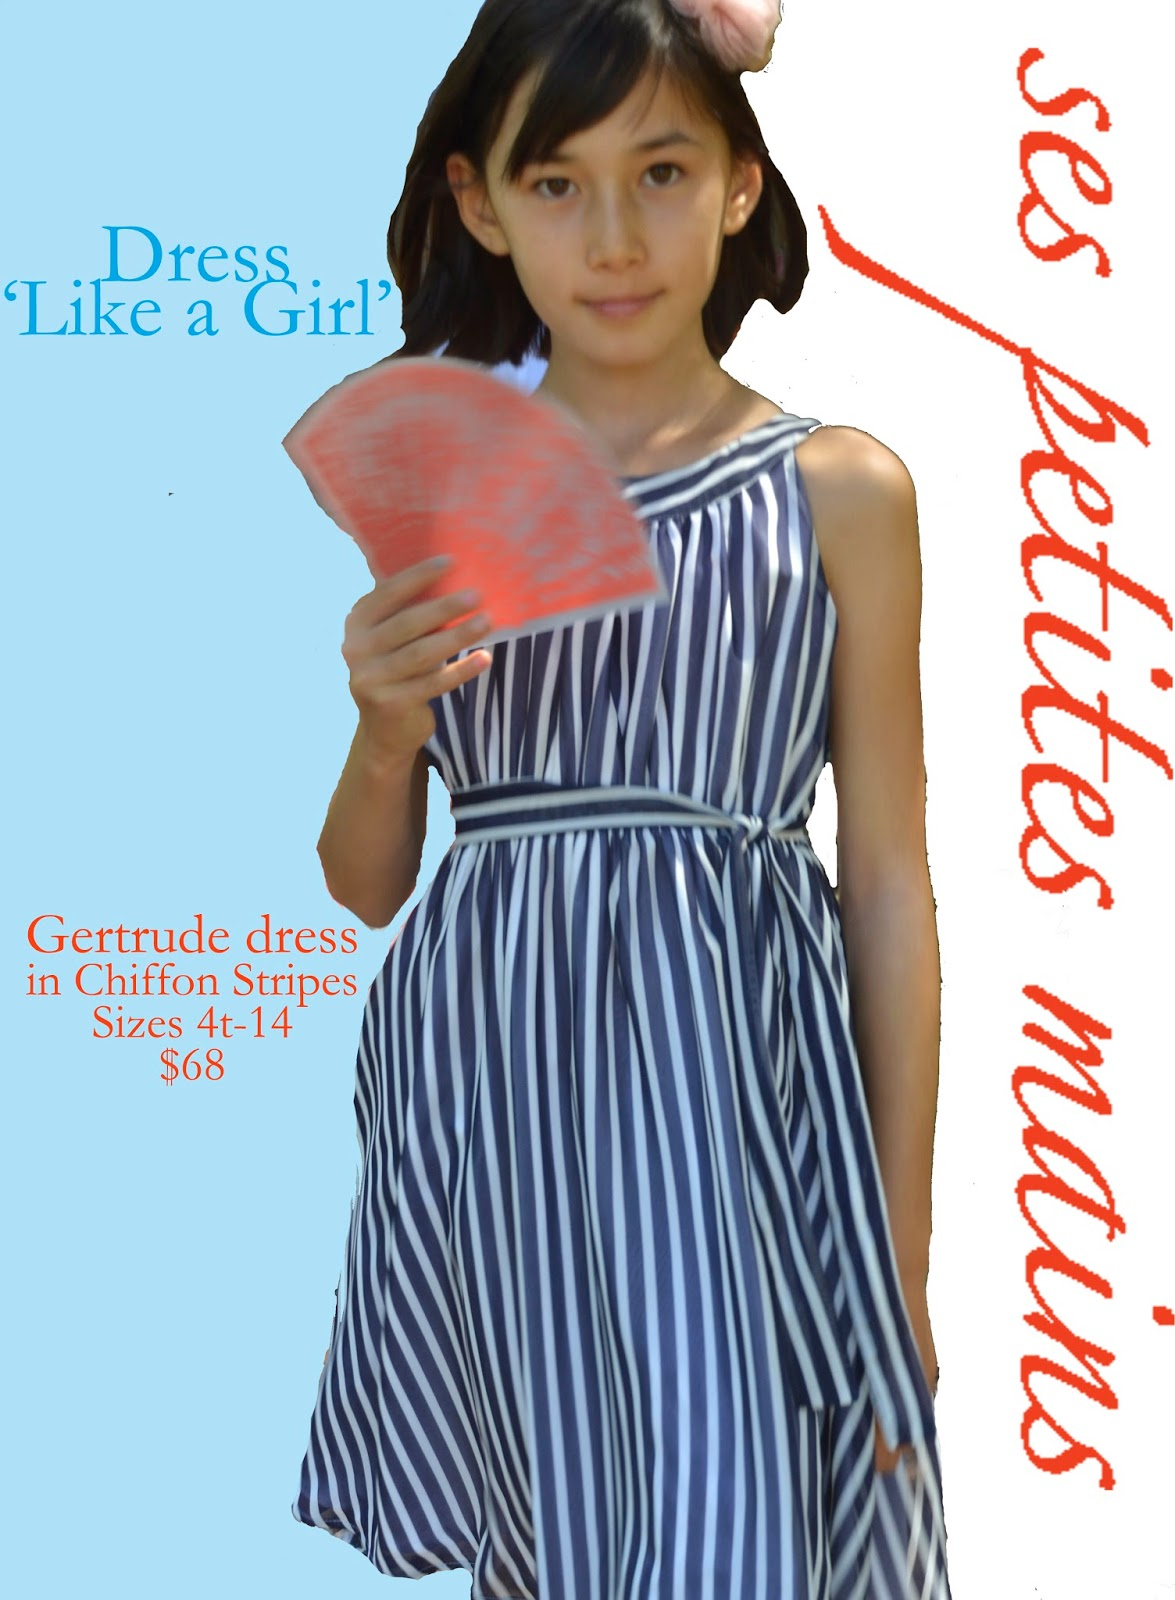 Gertrude dress in Chiffon Stripes, special occasion dress, tweens dress for special occasion, party dress, flower girl dress, featured in Babiekins Magazine